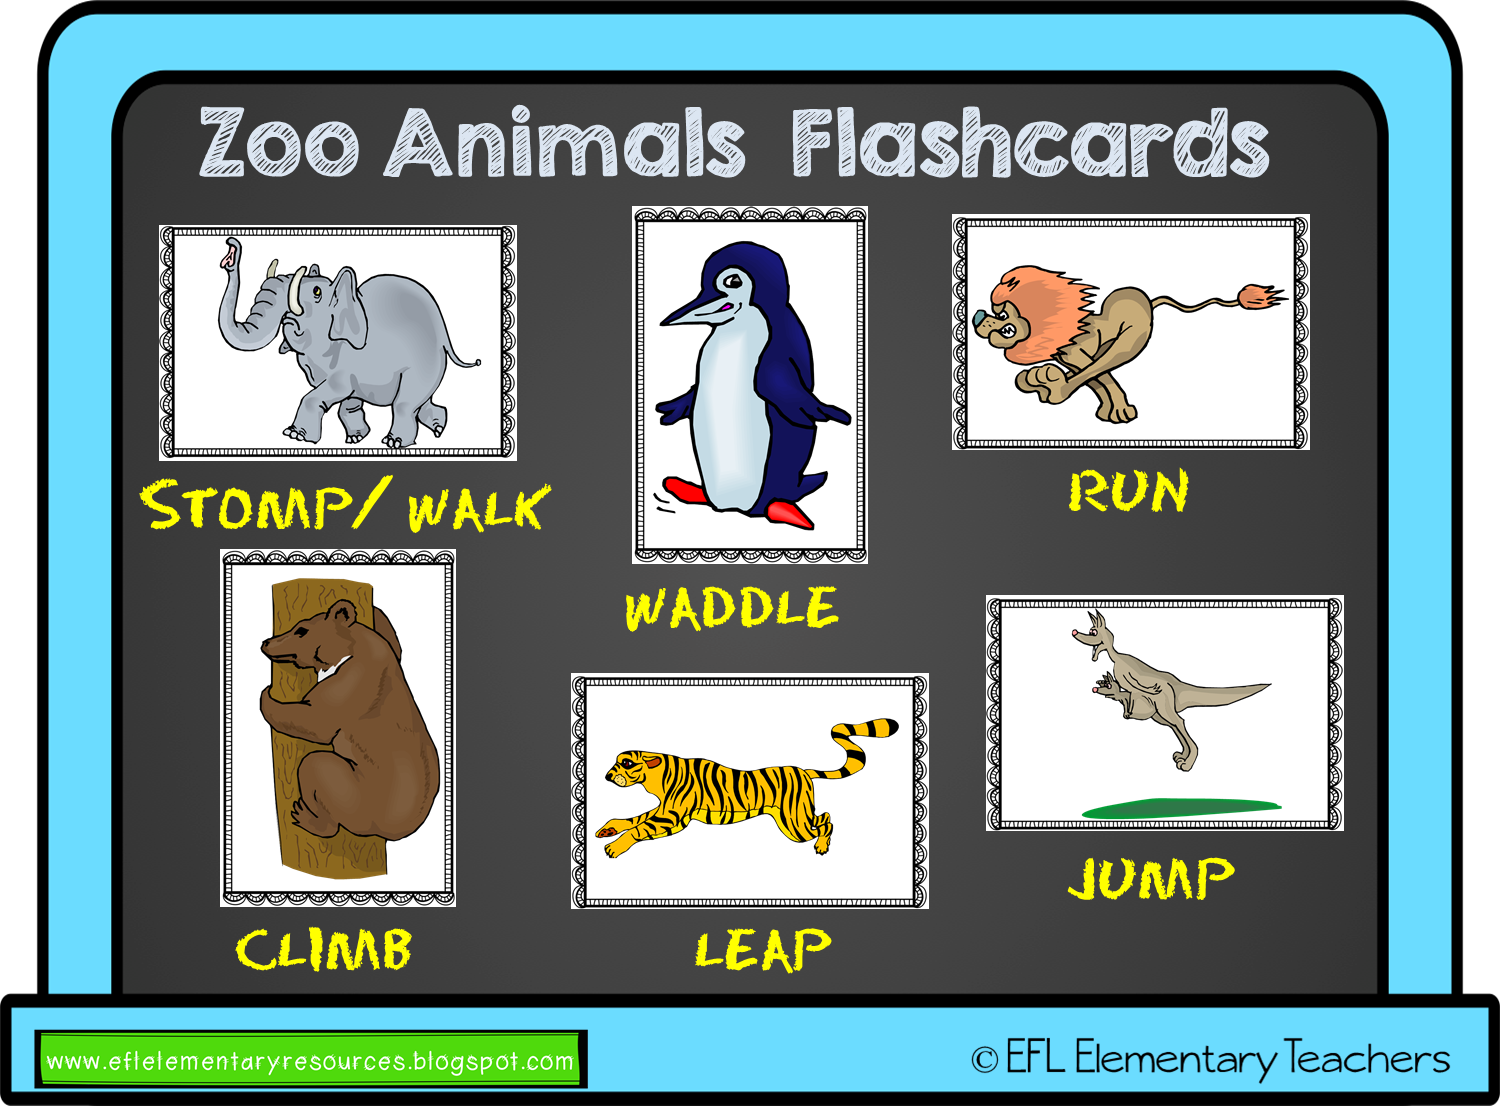 Efl Elementary Teachers Zoo Animal Move Resources For